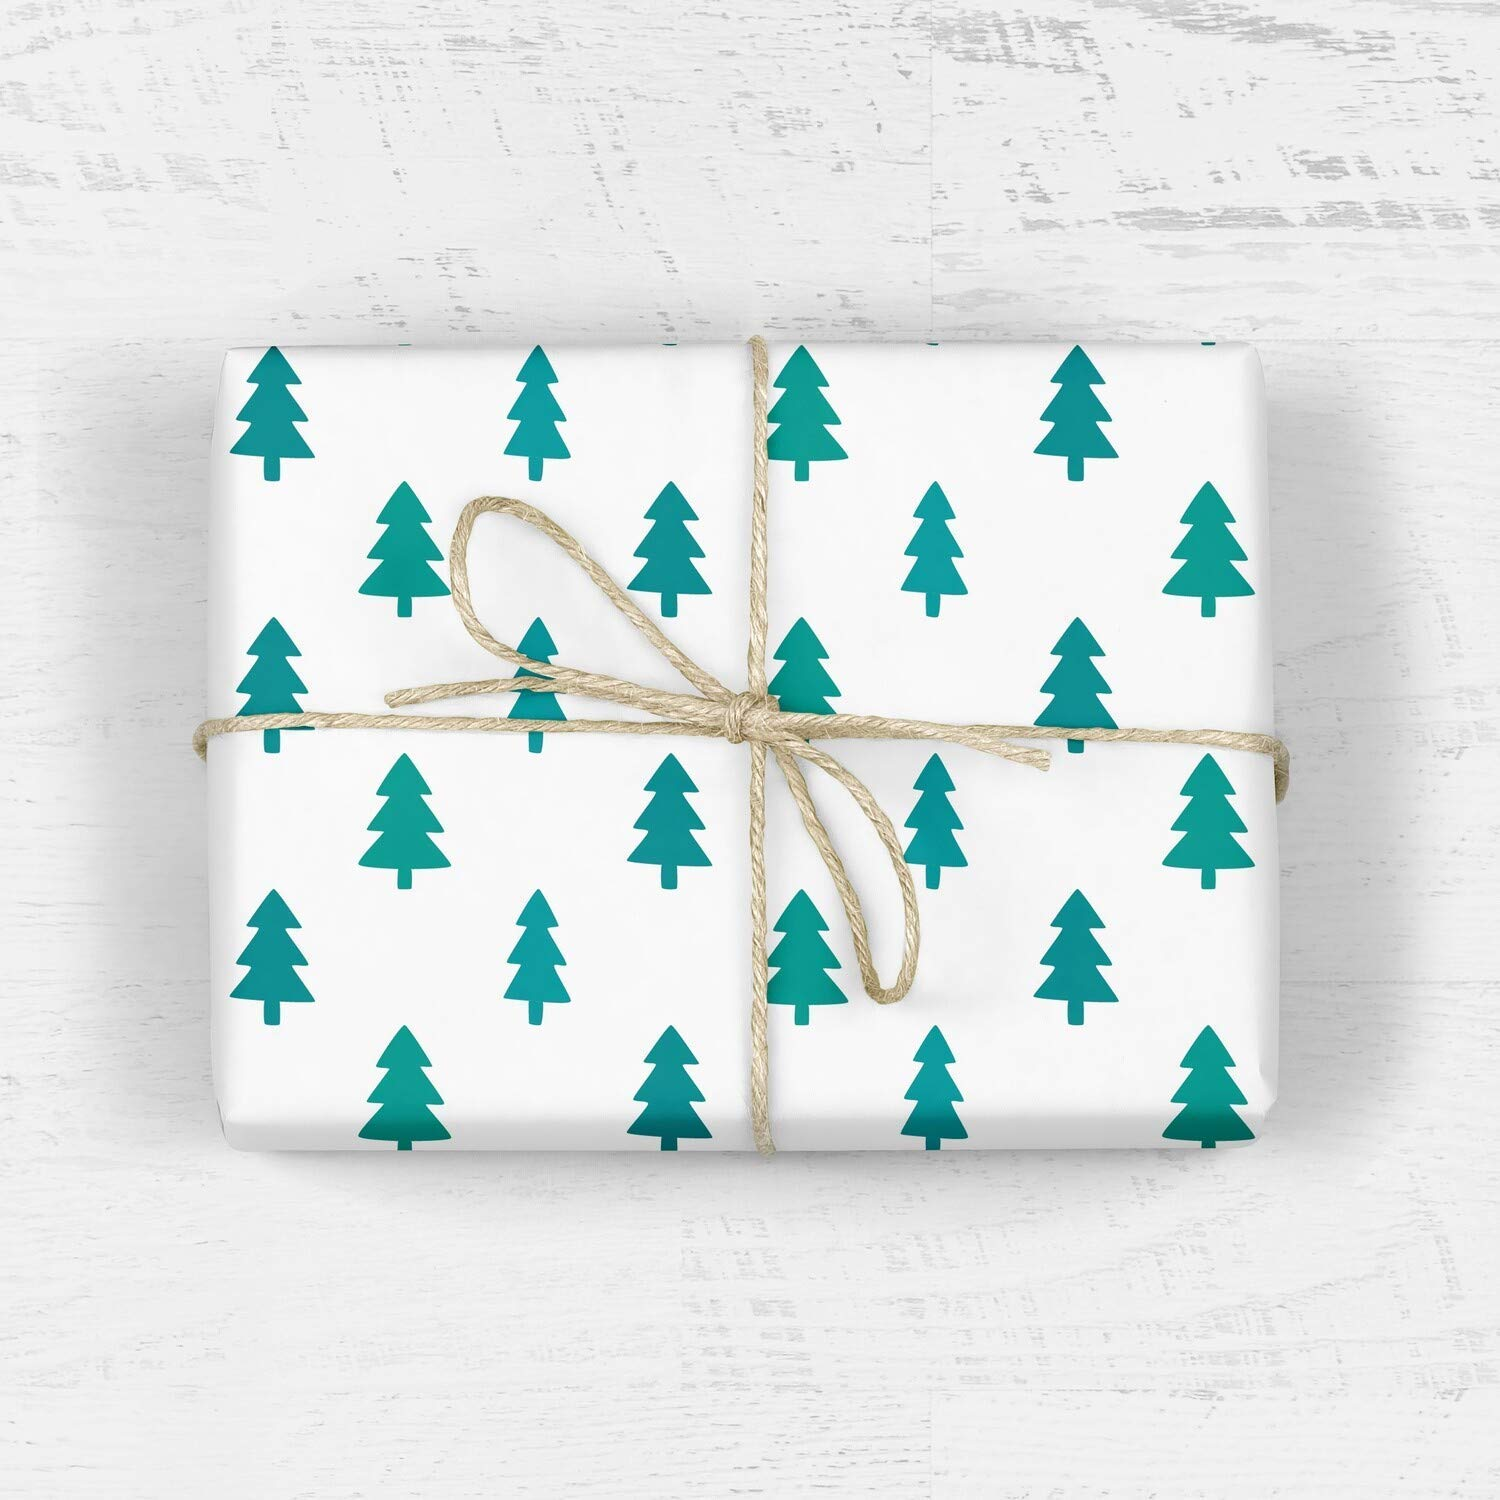 Black /& White Groom Shower Green Christmas Trees Wrapping Paper Fathers Day Hanukkah Christmas Three Sheets 20 x 29 Woodland Wrapping Paper Craft Paper Birthday Three Sheets 20 x 29